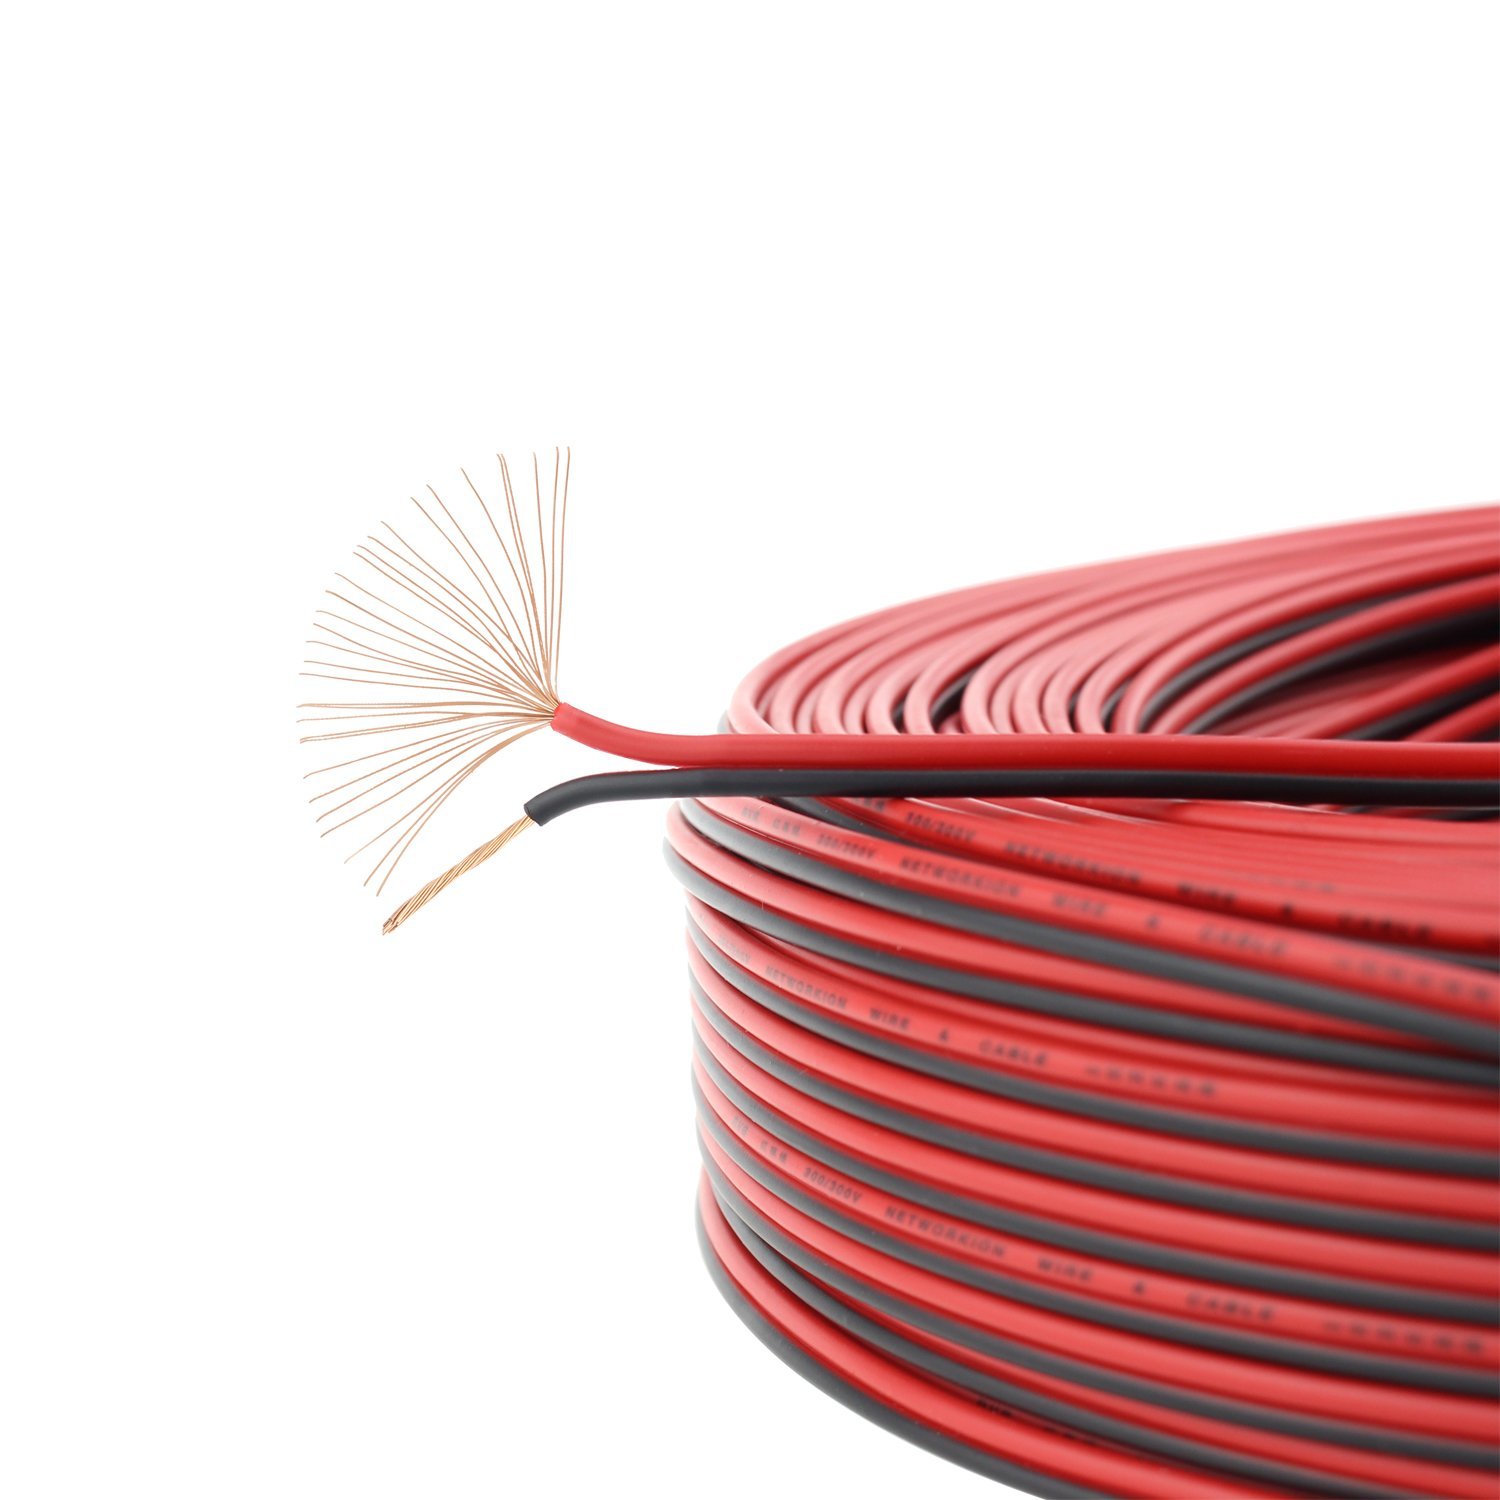 18 Gauge 50ft Red Black Hookup Electrical Wire Simnat Installation Wiring Pictures Cctv Conduits Color Coding Awg Extension Copper Audio Cord Speaker Cable For Led Ribbon Lamp Light Electronics